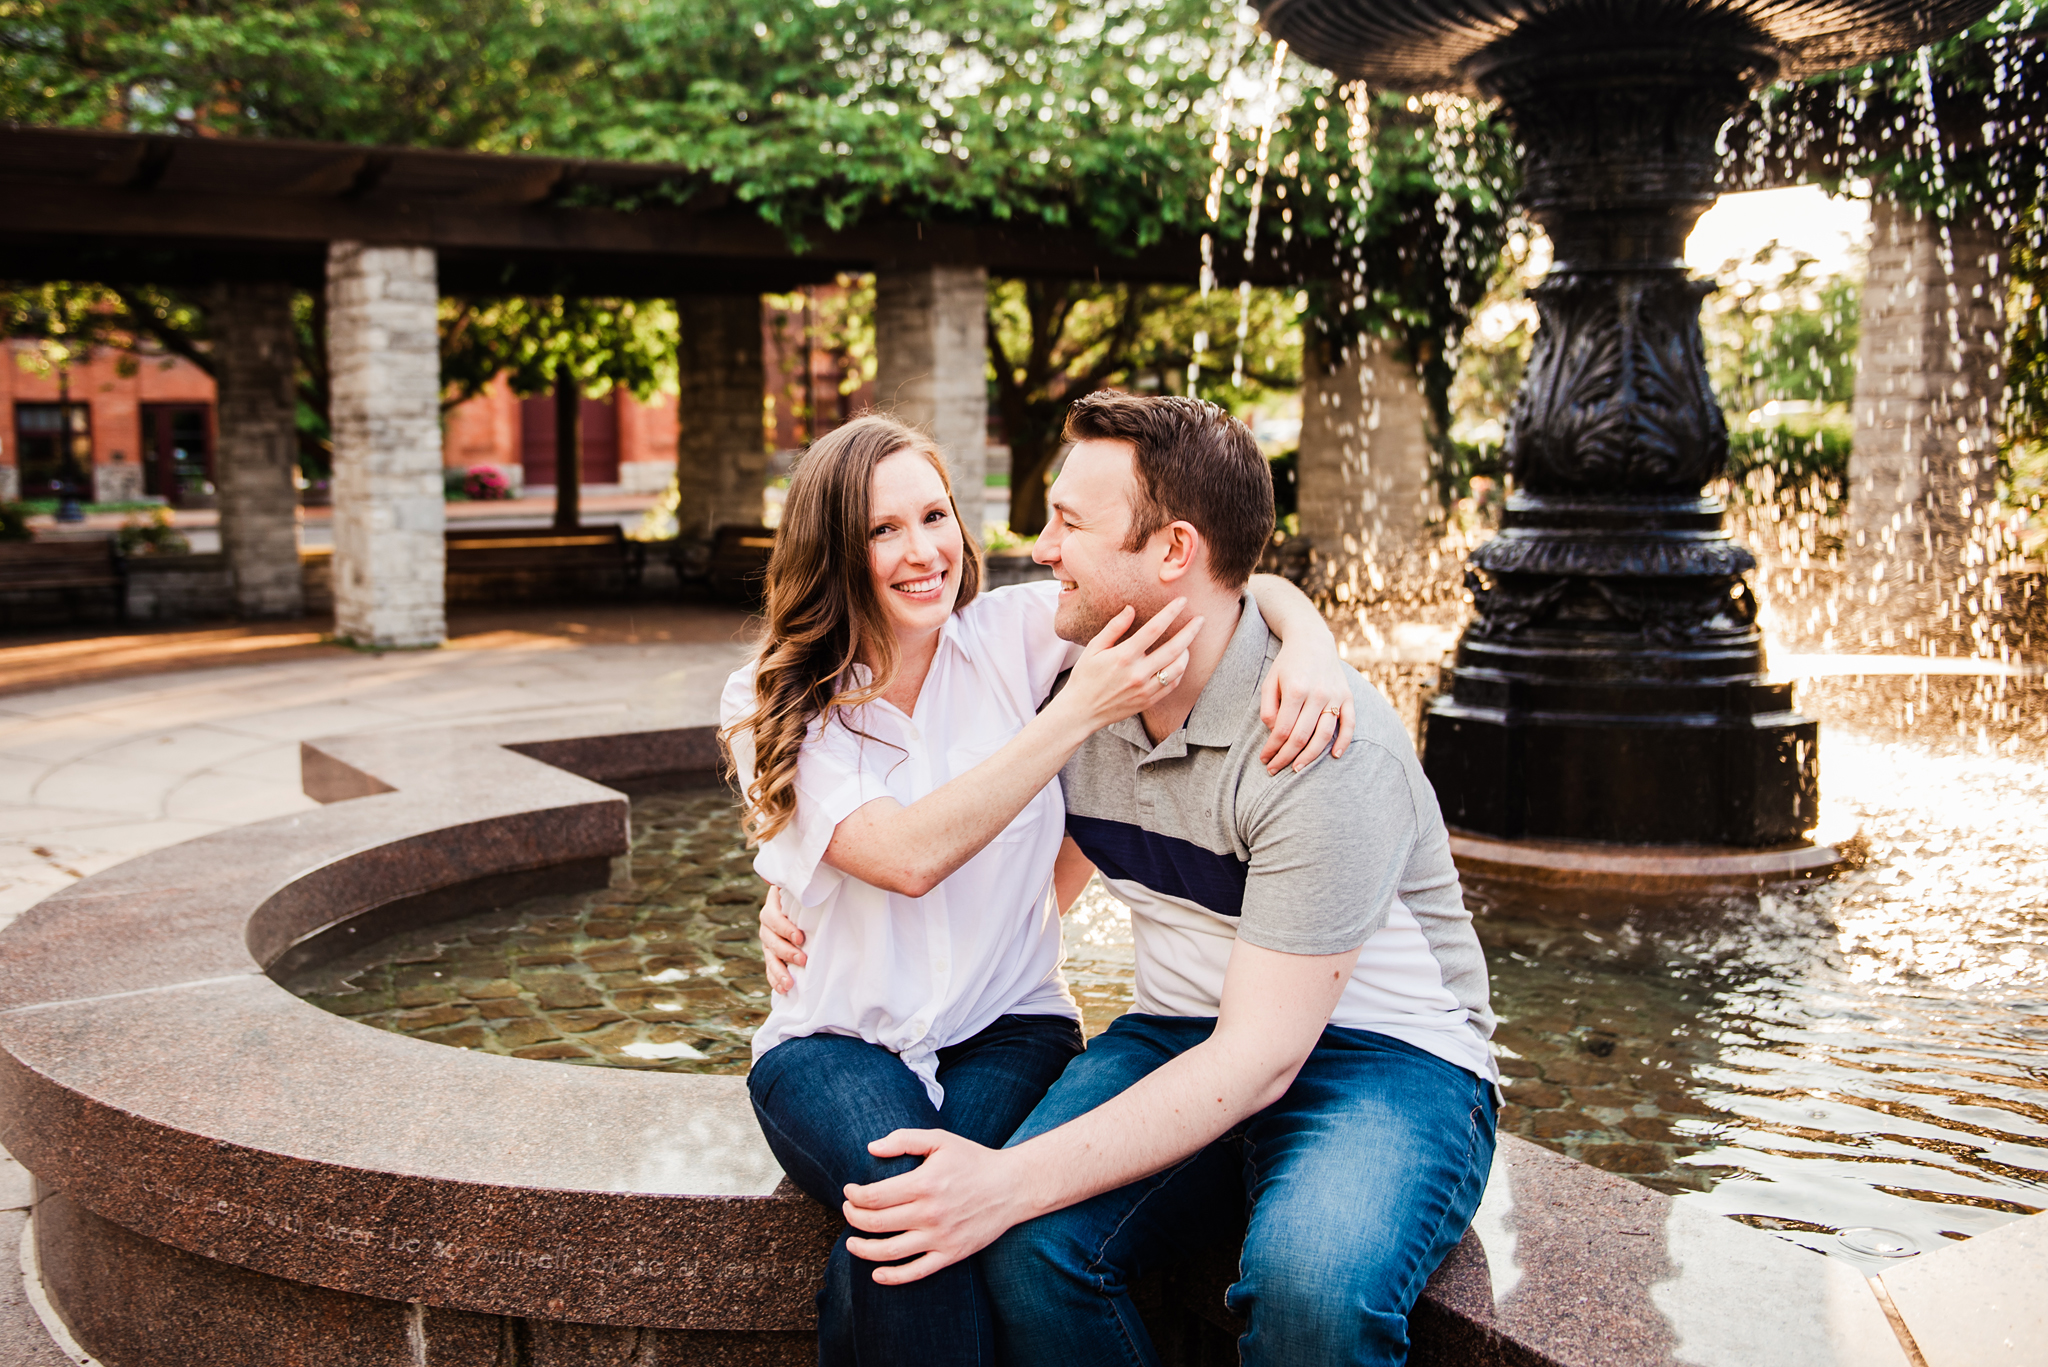 Franklin_Square_Park_Syracuse_Engagement_Session_JILL_STUDIO_Rochester_NY_Photographer_DSC_3914.jpg